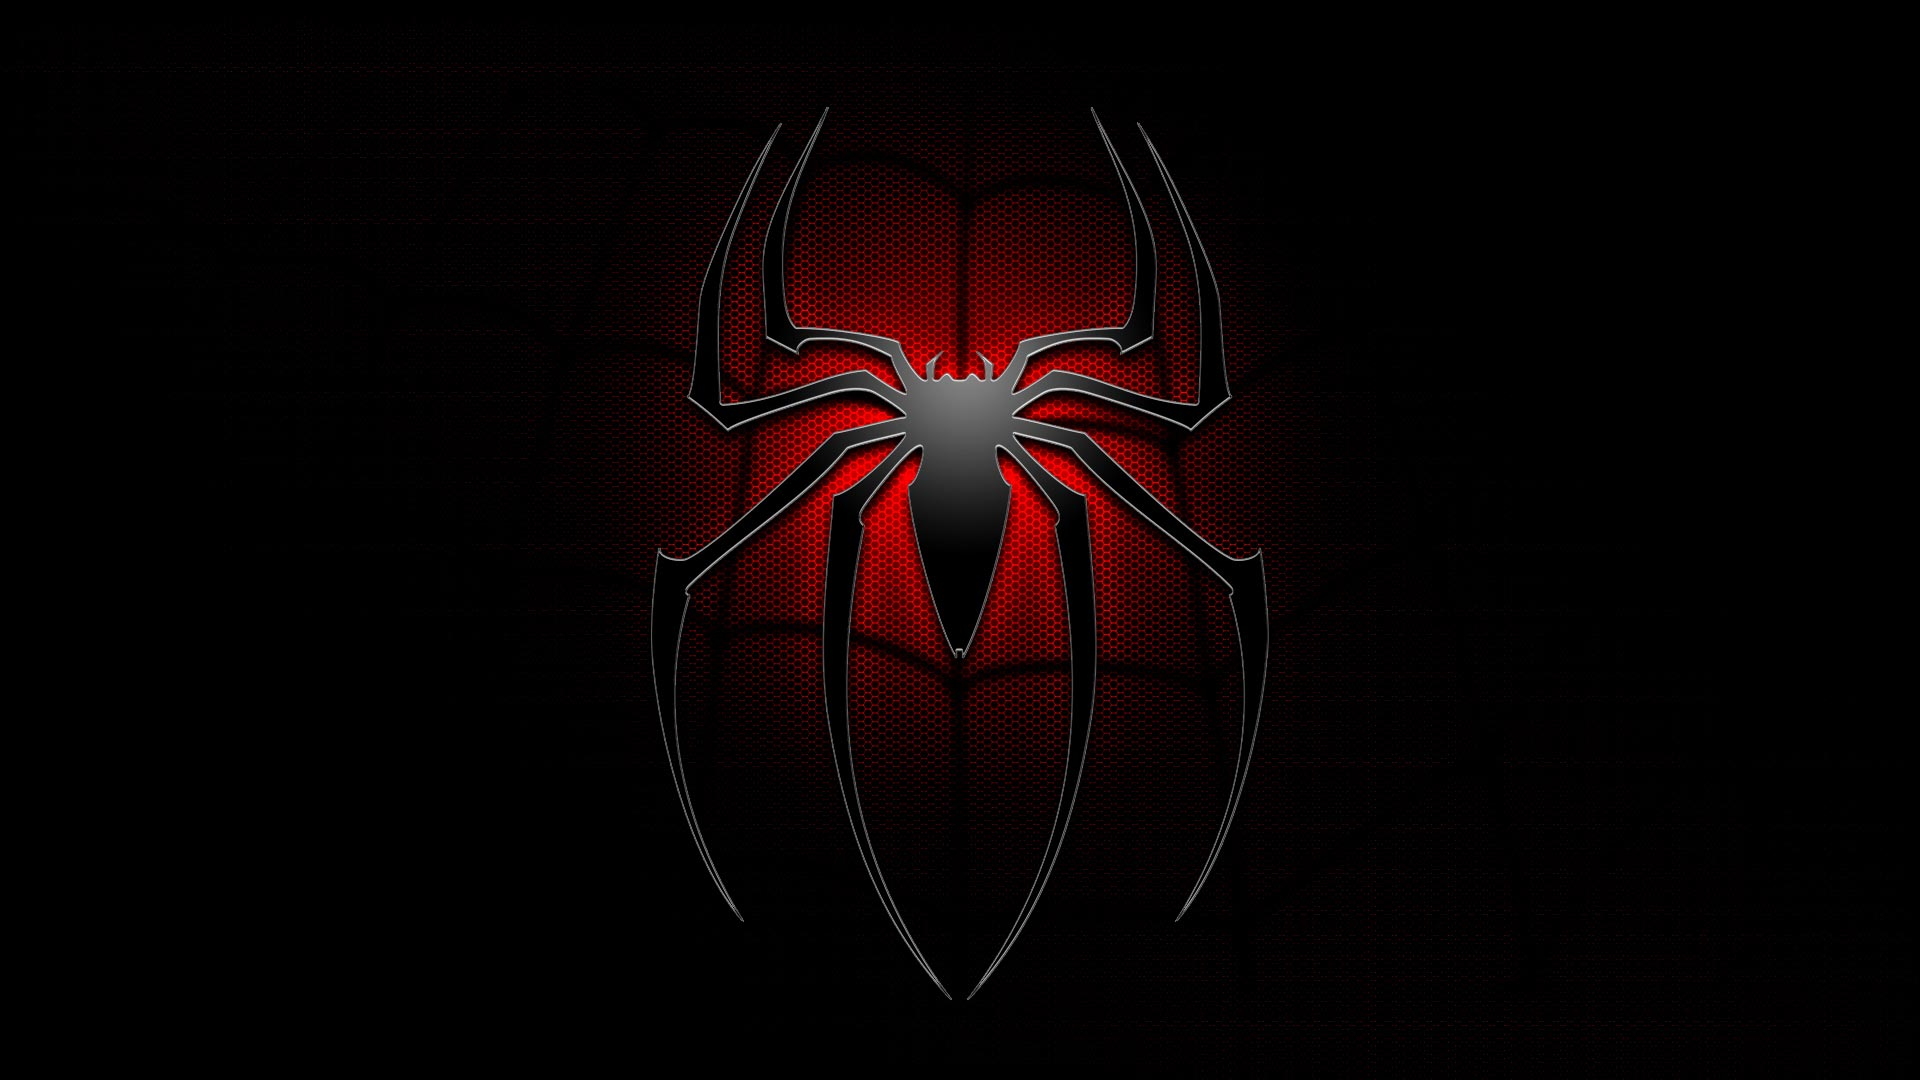 71 Spiderman Hd Wallpaper On Wallpapersafari